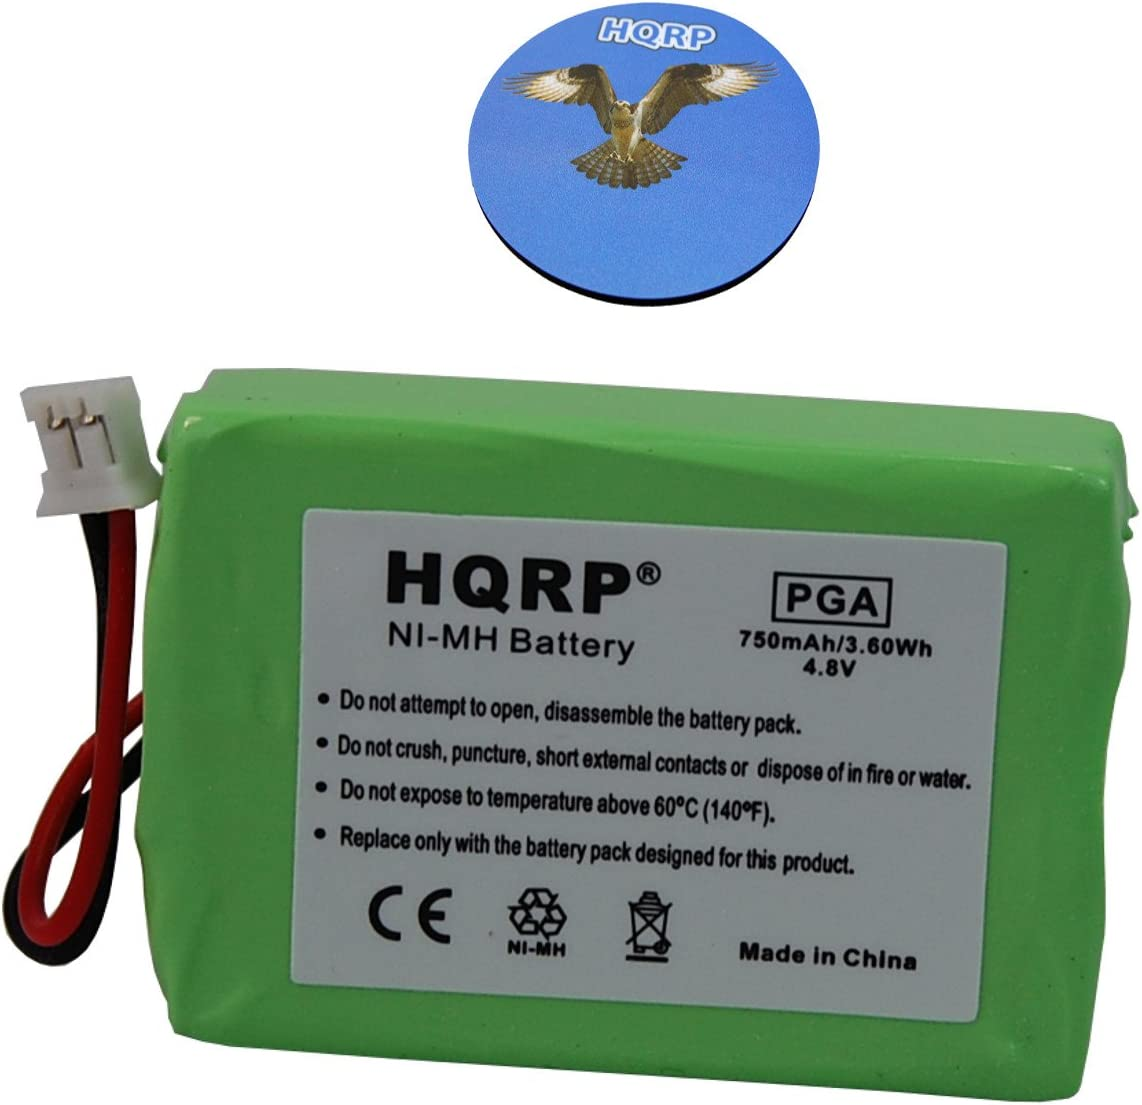 New color HQRP Battery Compatible Surprise price with Sportdog 2400 ProHunter Model SD-24